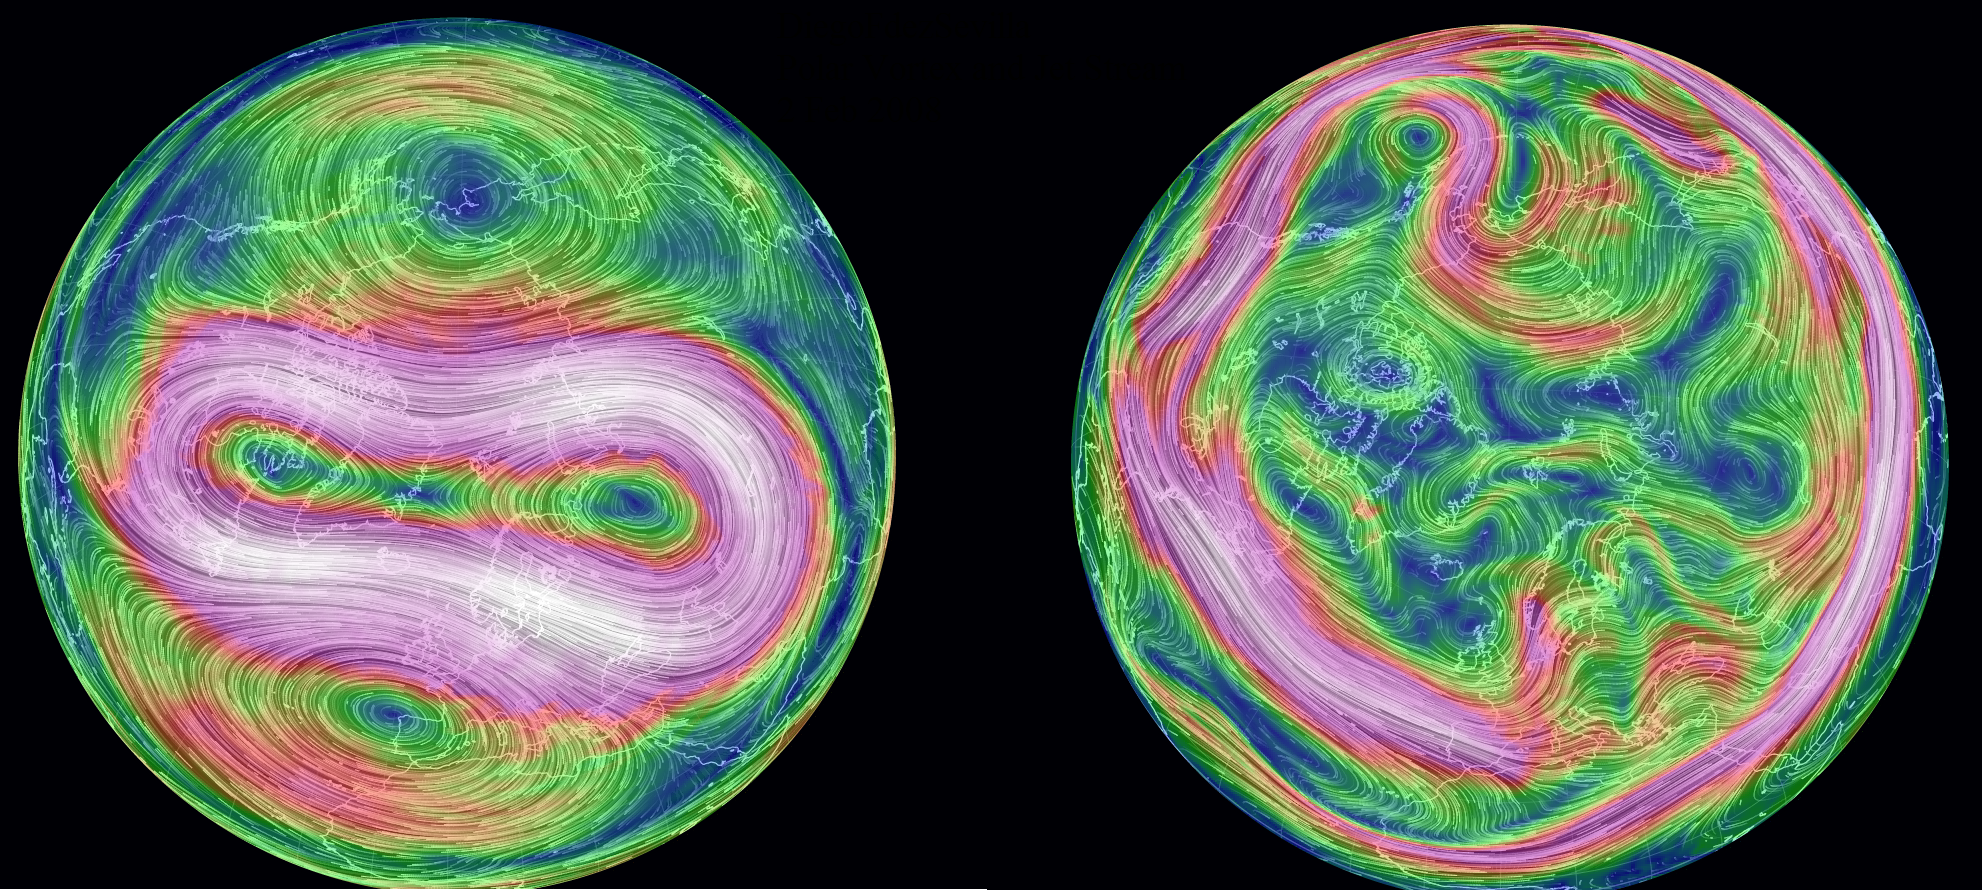 Why There Is No Need For The Polar Vortex To Break In Order To Have A Wobbling Jet Stream And